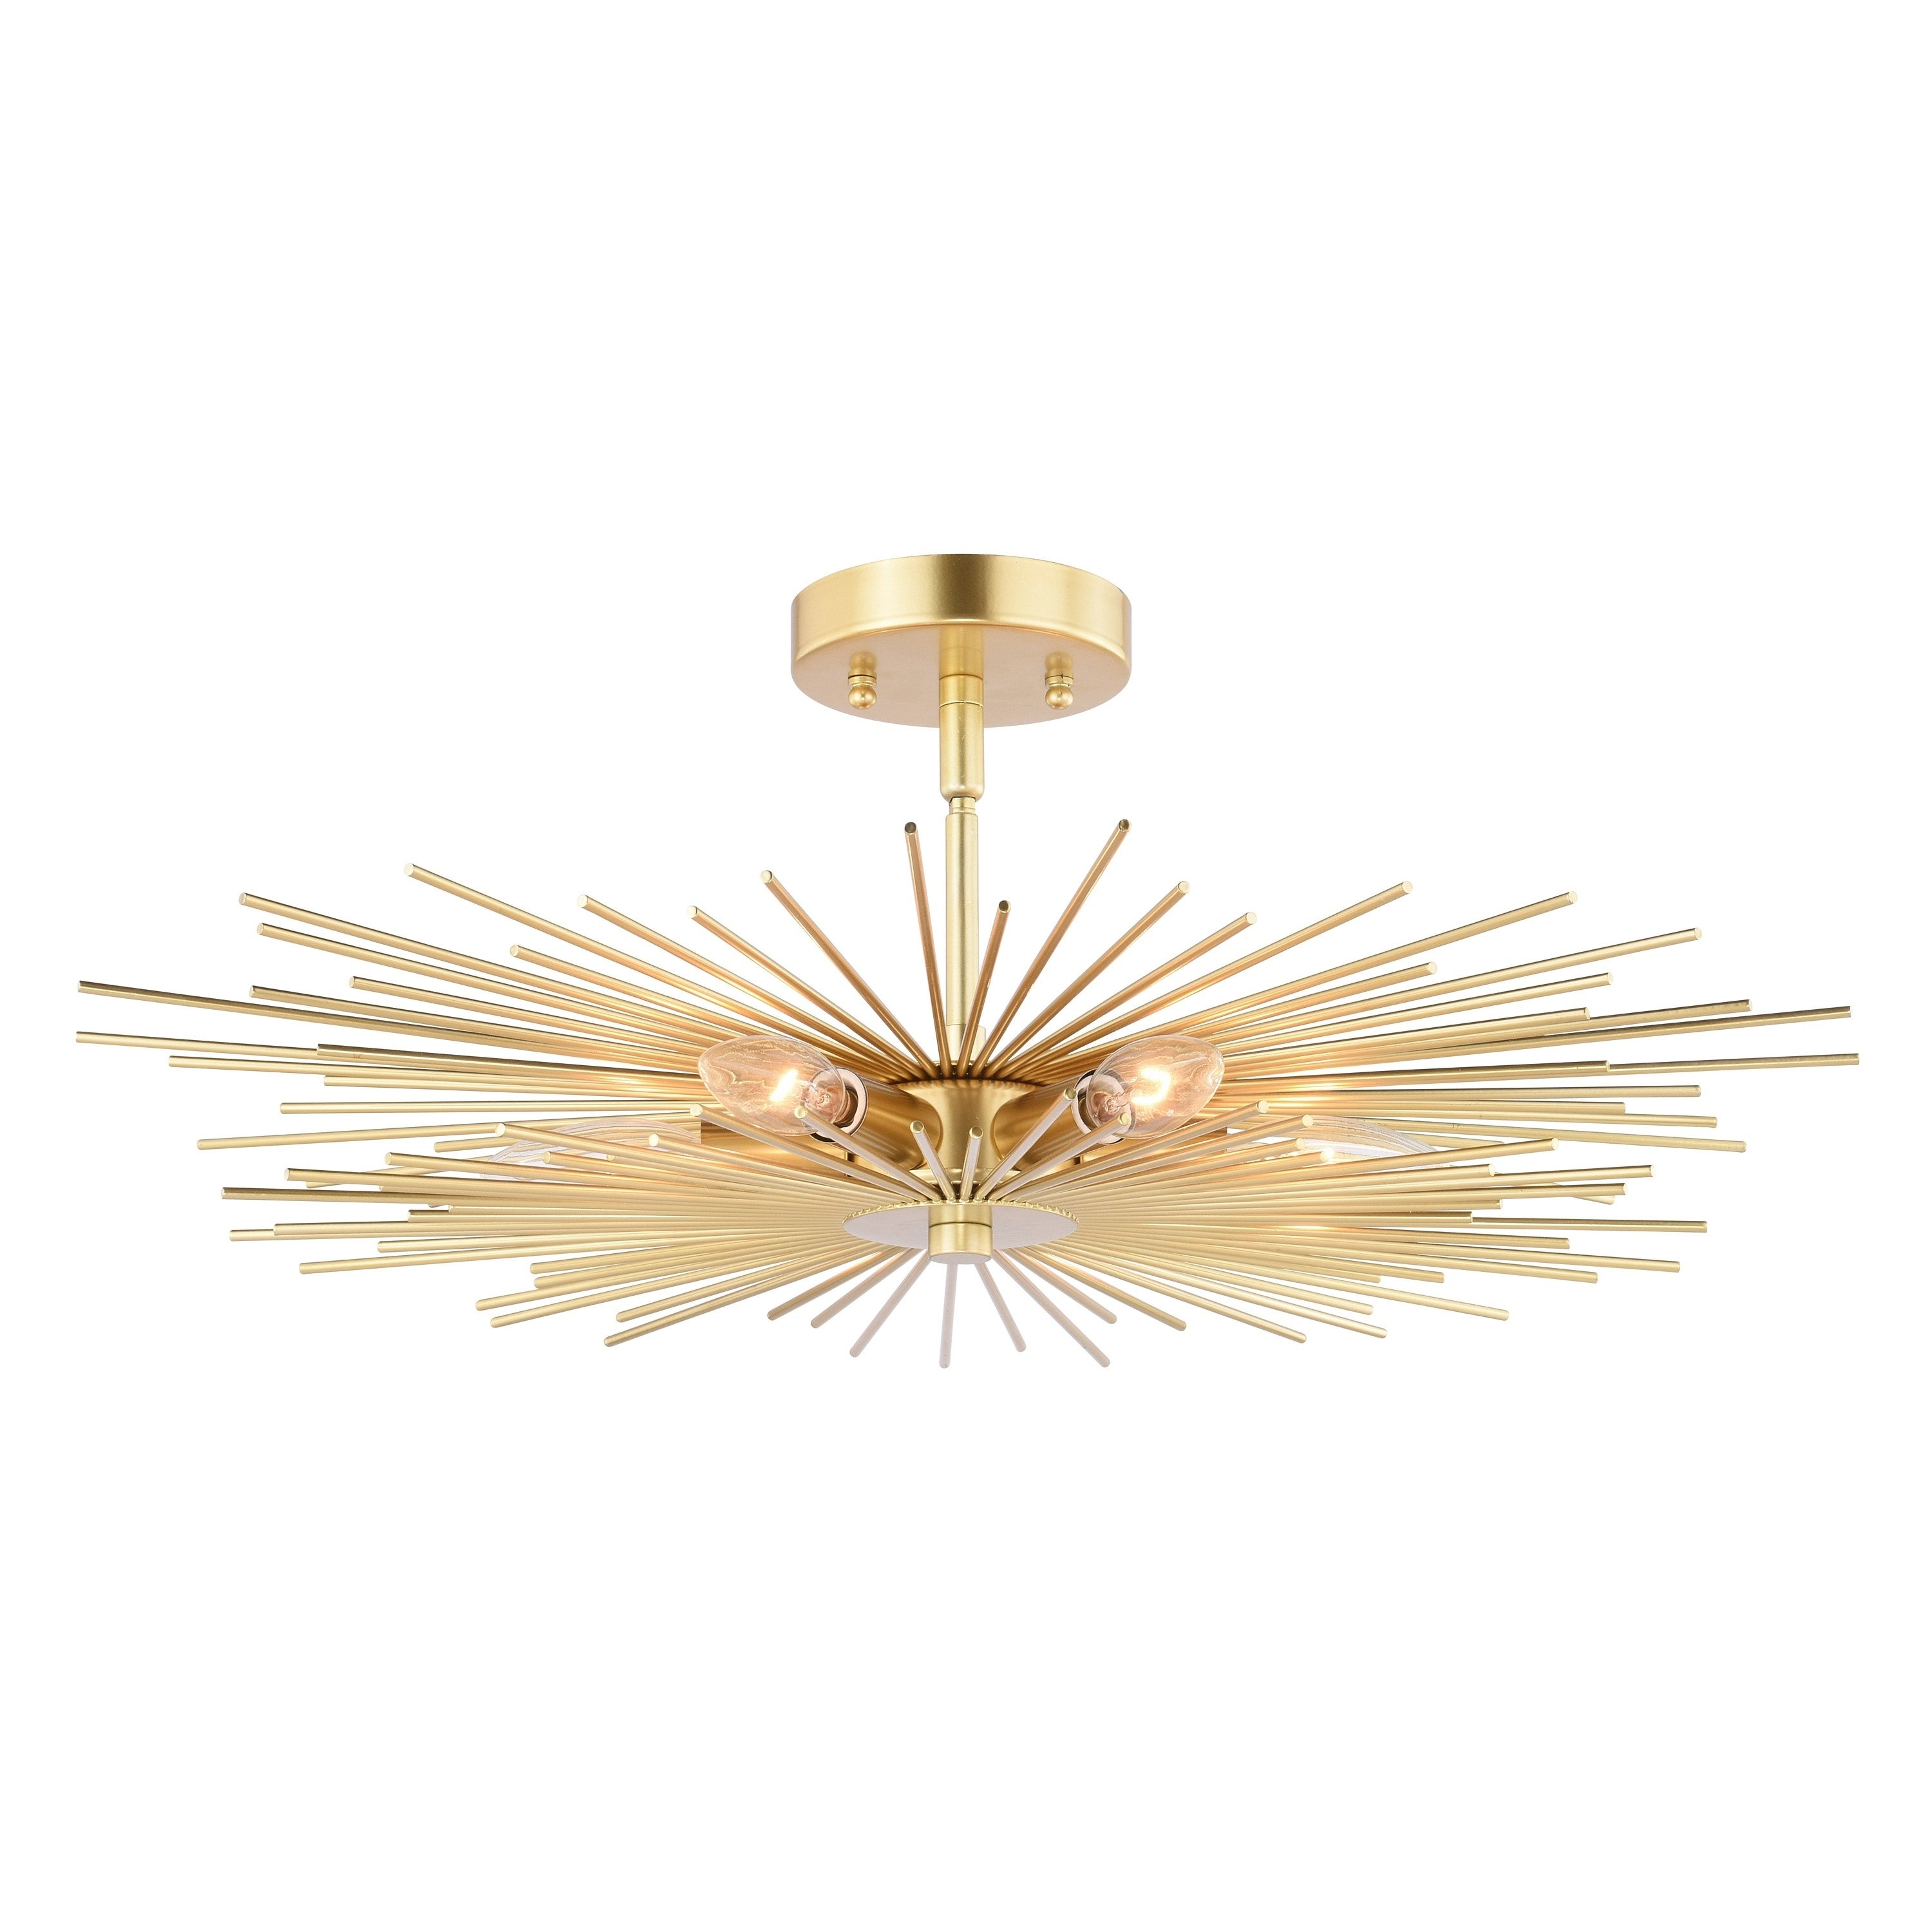 Image of: Shop Black Friday Deals On Nikko 24 In W Gold Mid Century Modern Semi Flush Mount Ceiling Light 24 In W X 9 5 In H X 24 In D Overstock 28855348